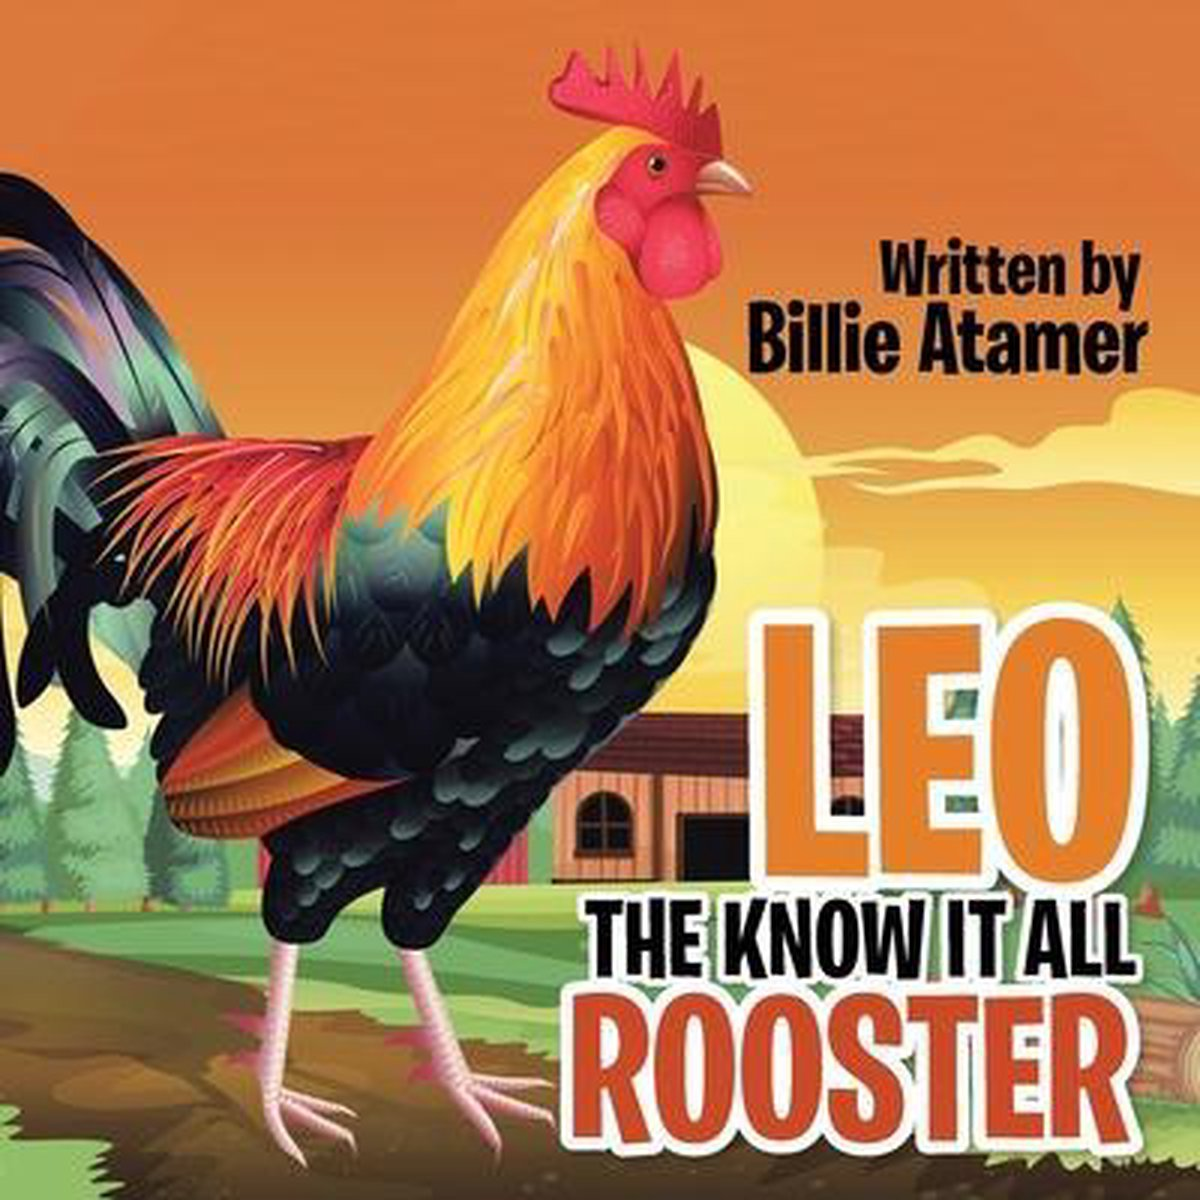 Leo the Know It All Rooster